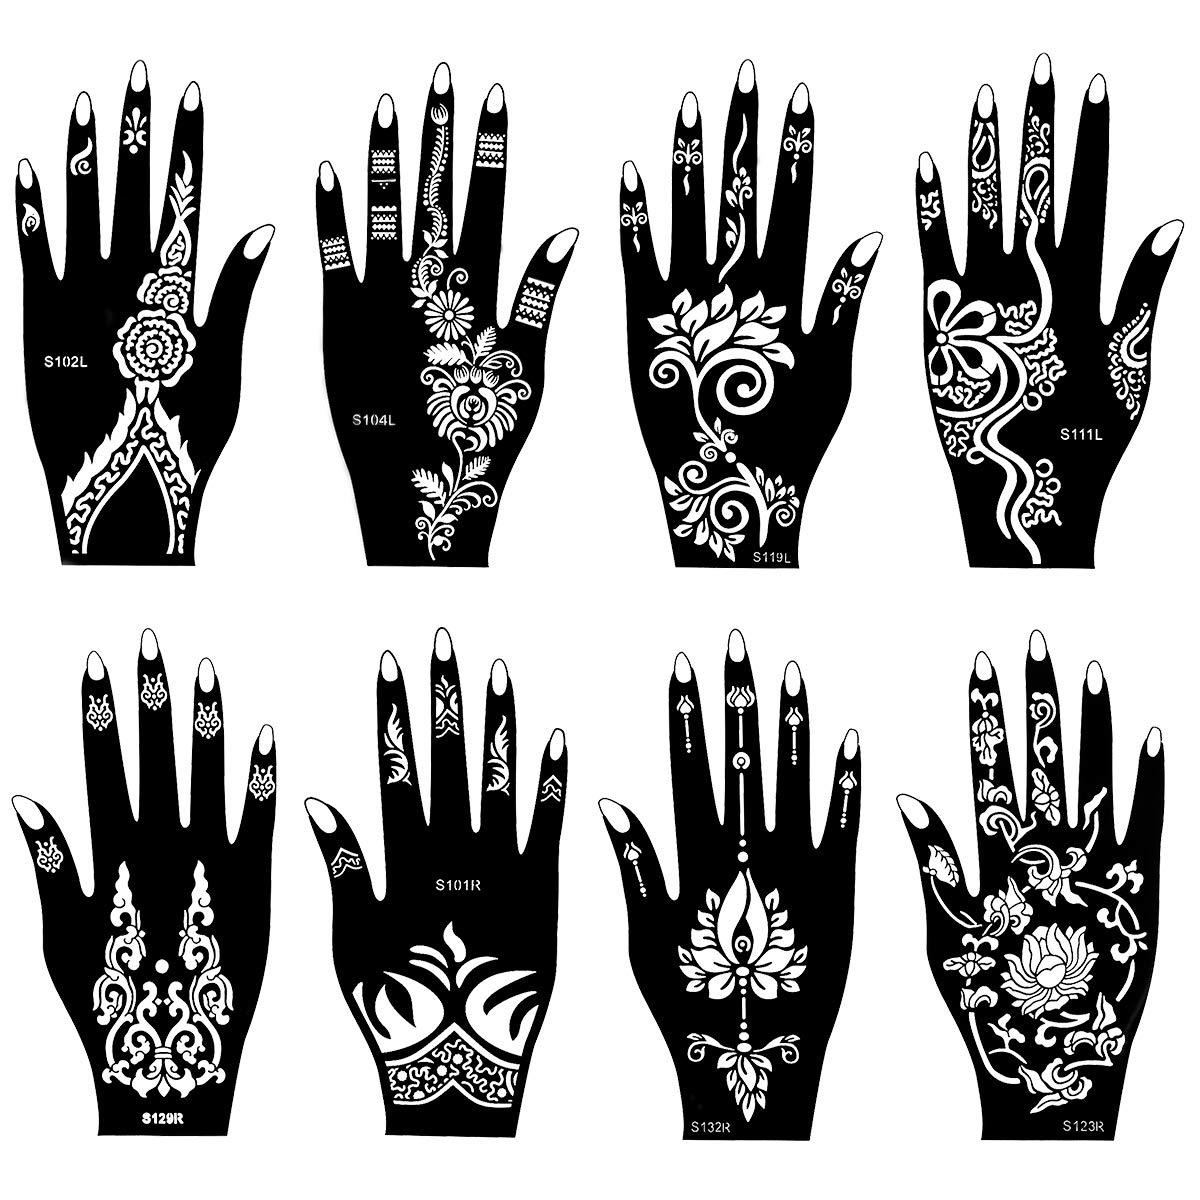 SKYMORE 8 PCS Henna Tattoo Stencil Temporary Tattoo Temples Set Indian Arabian Tattoo Reusable Stickers Stencils Body Art Designs for Hands 8.62''x 4.68'' by SKYMORE